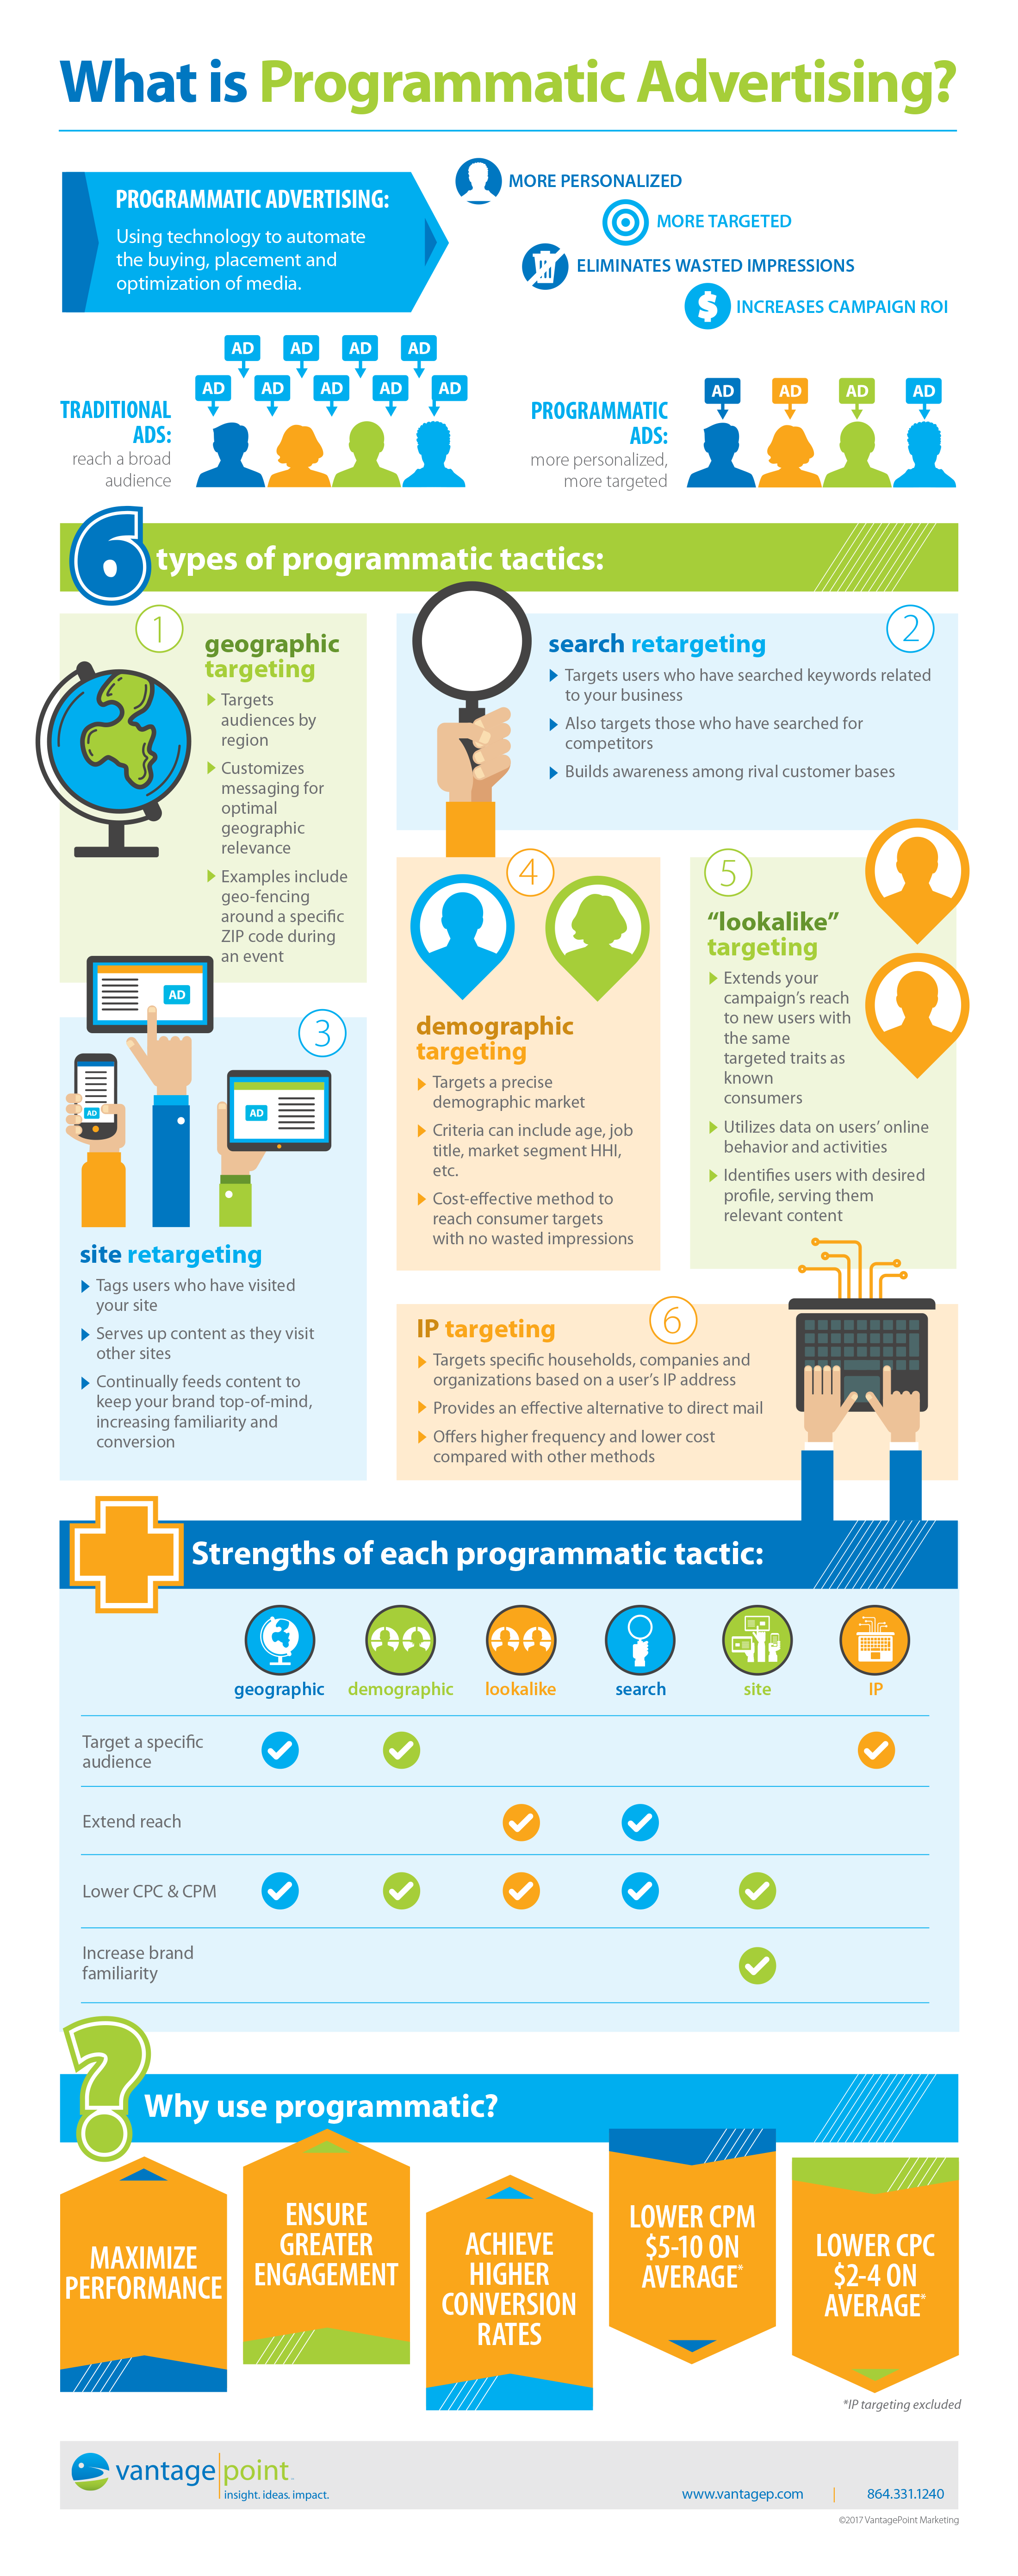 VantagePoint Marketing Programmatic advertising infographic